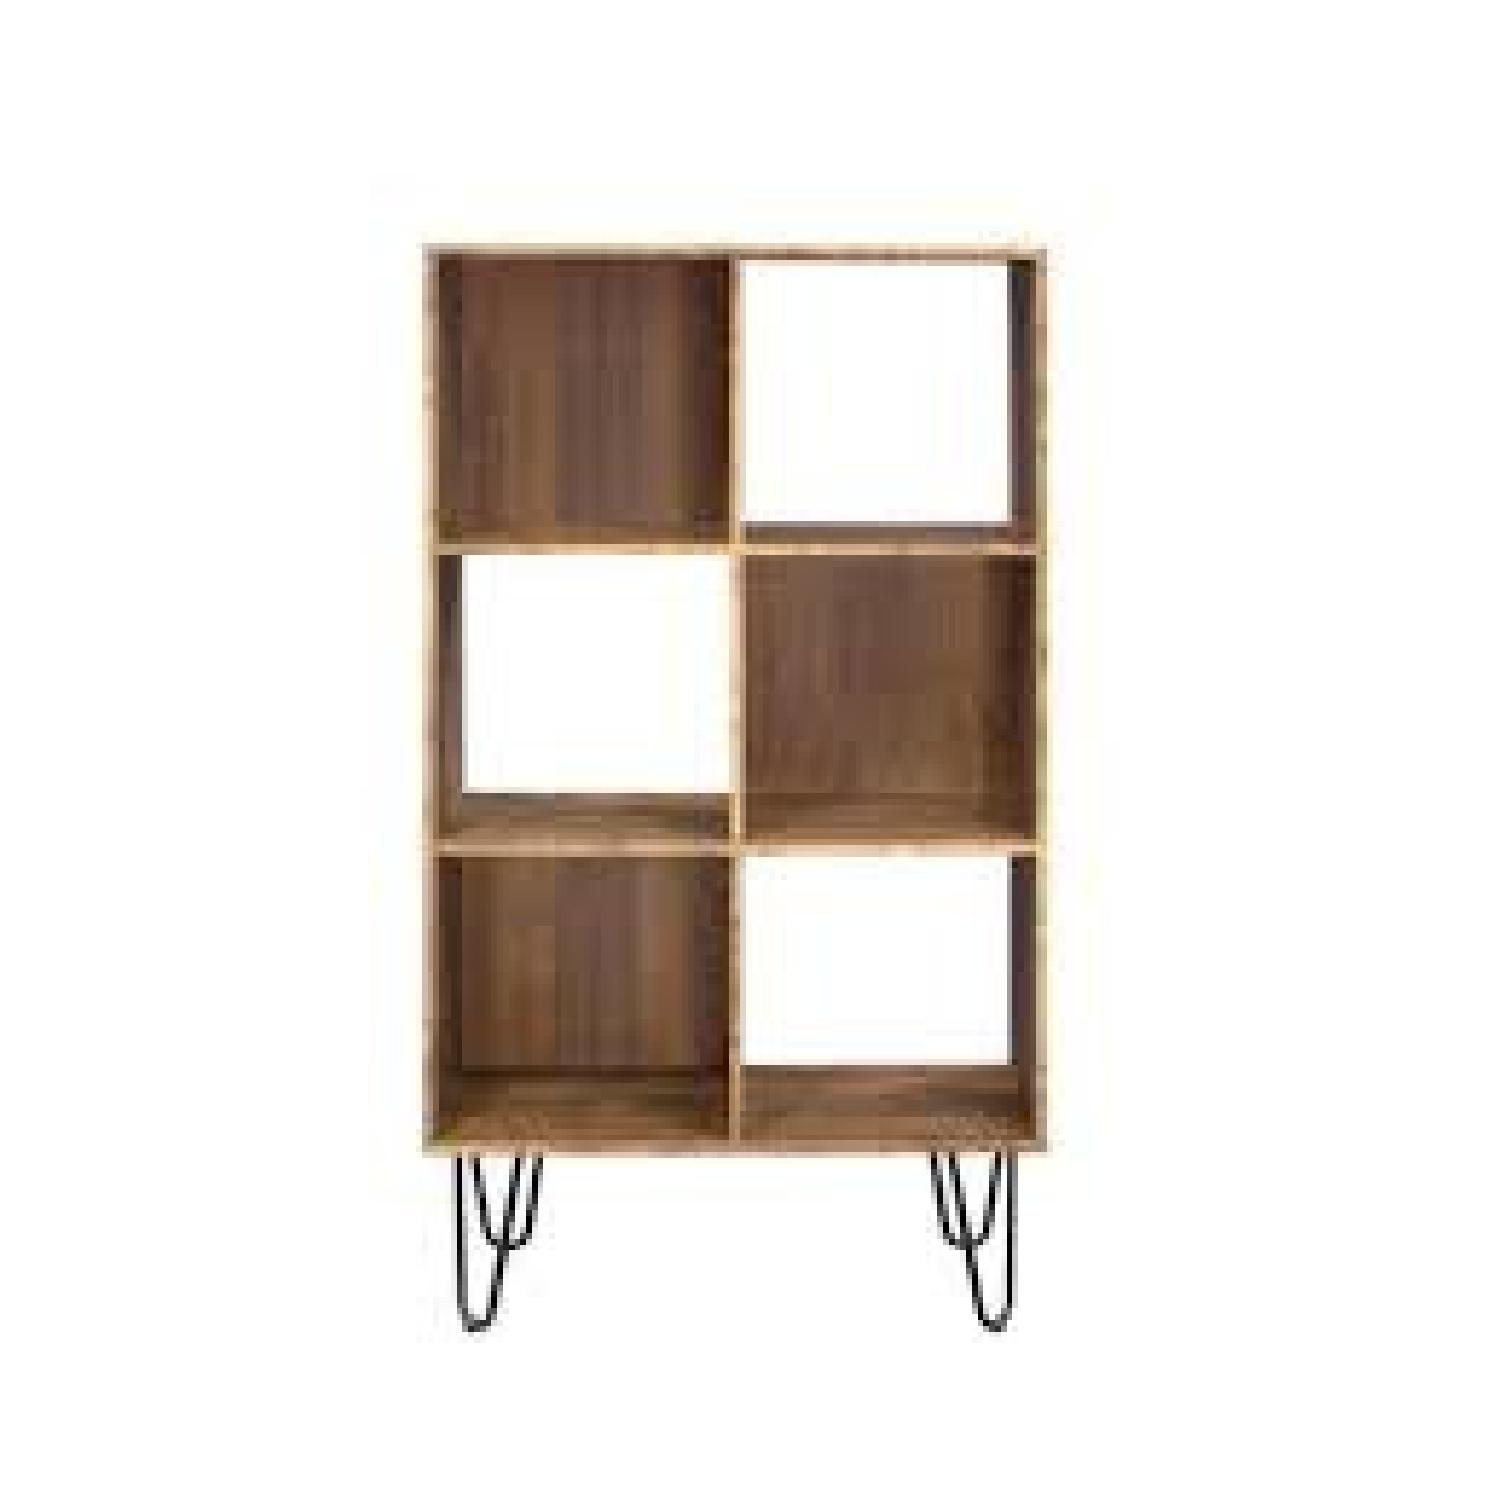 Rustic Amber Bookcase w/ Hair Pin Legs - image-0